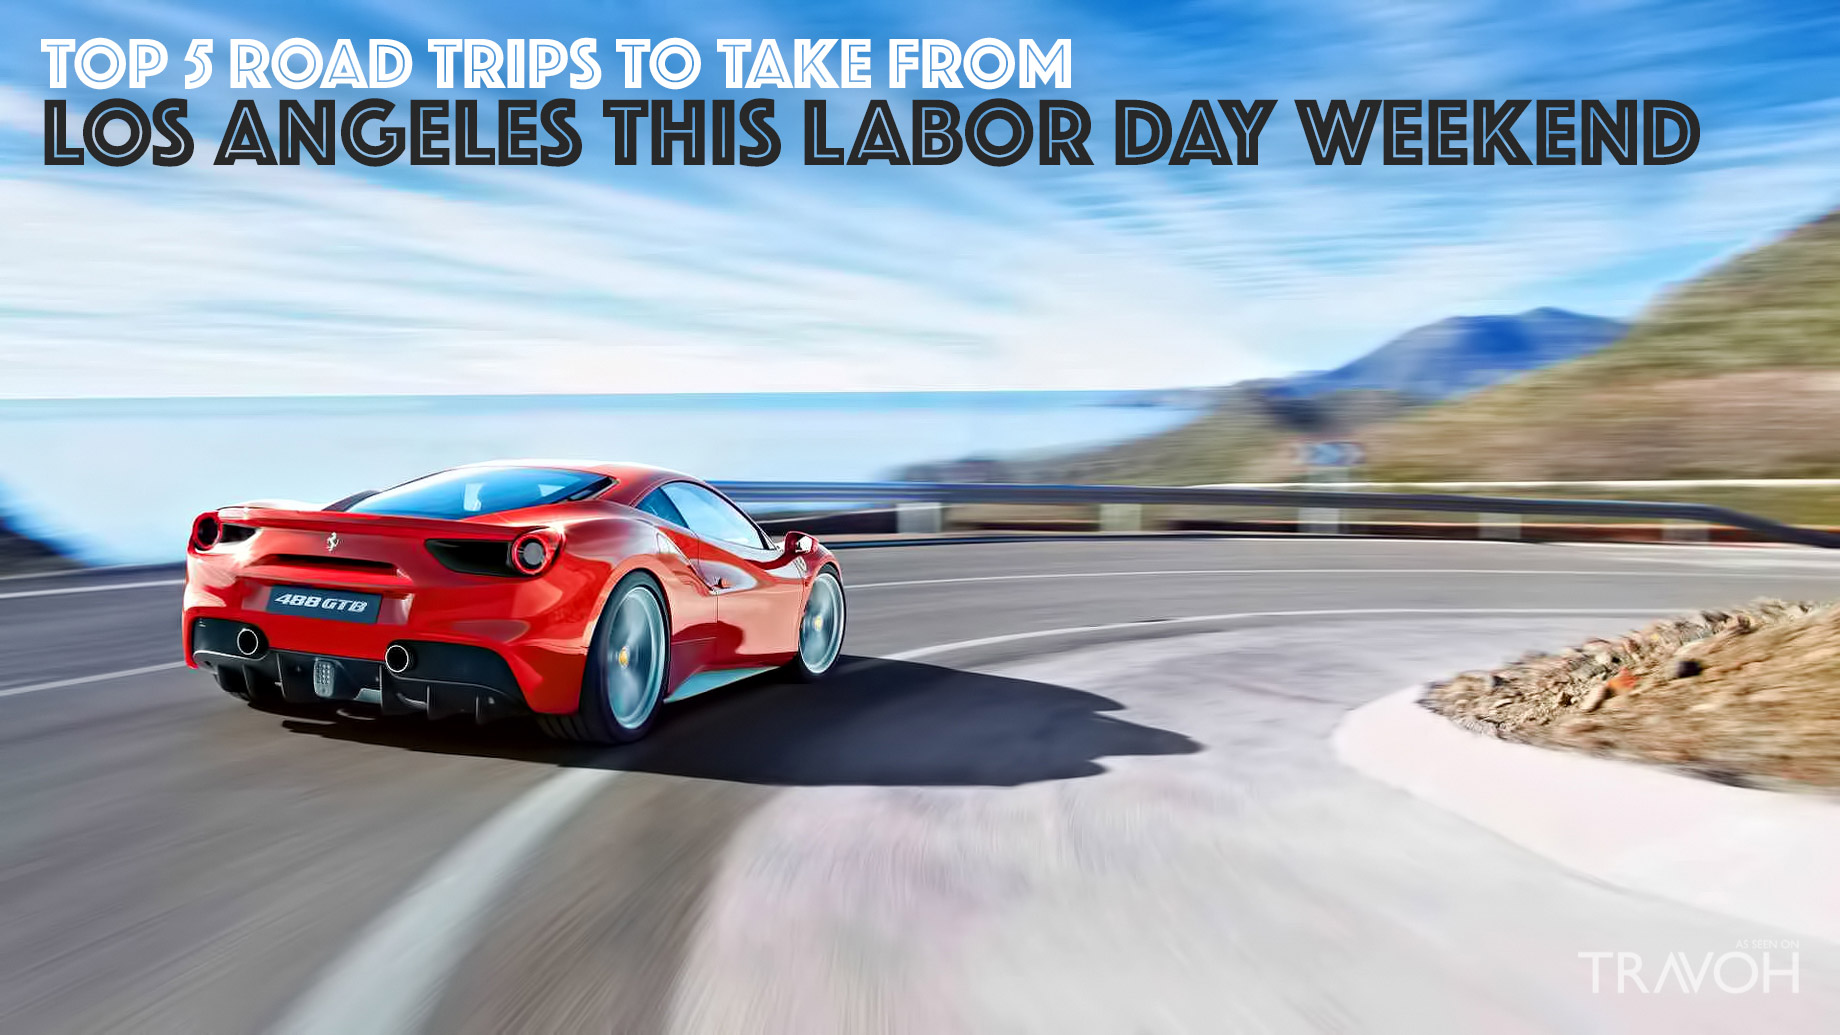 Top 5 Road Trips to Take from Los Angeles This Labor Day Weekend